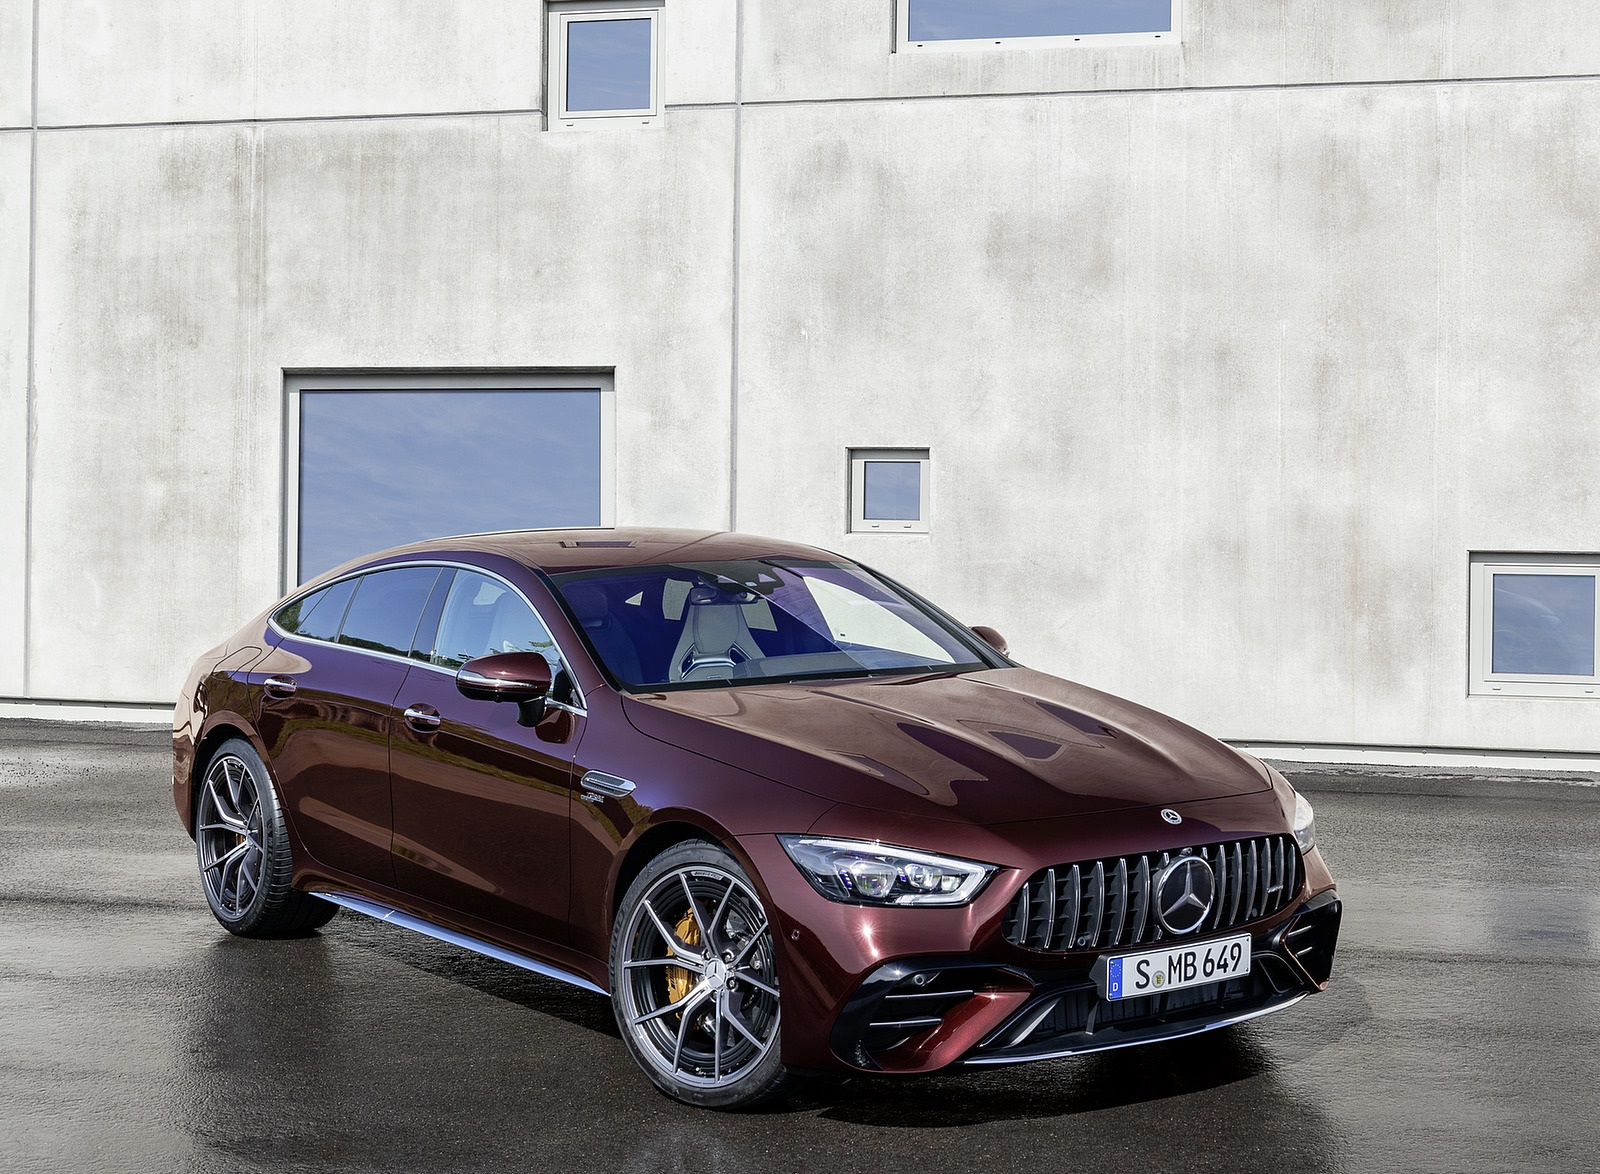 2022 Mercedes-AMG GT 53 4MATIC+ 4-Door Coupe (Color: Rubellite Red) Front Three-Quarter Wallpapers (9)